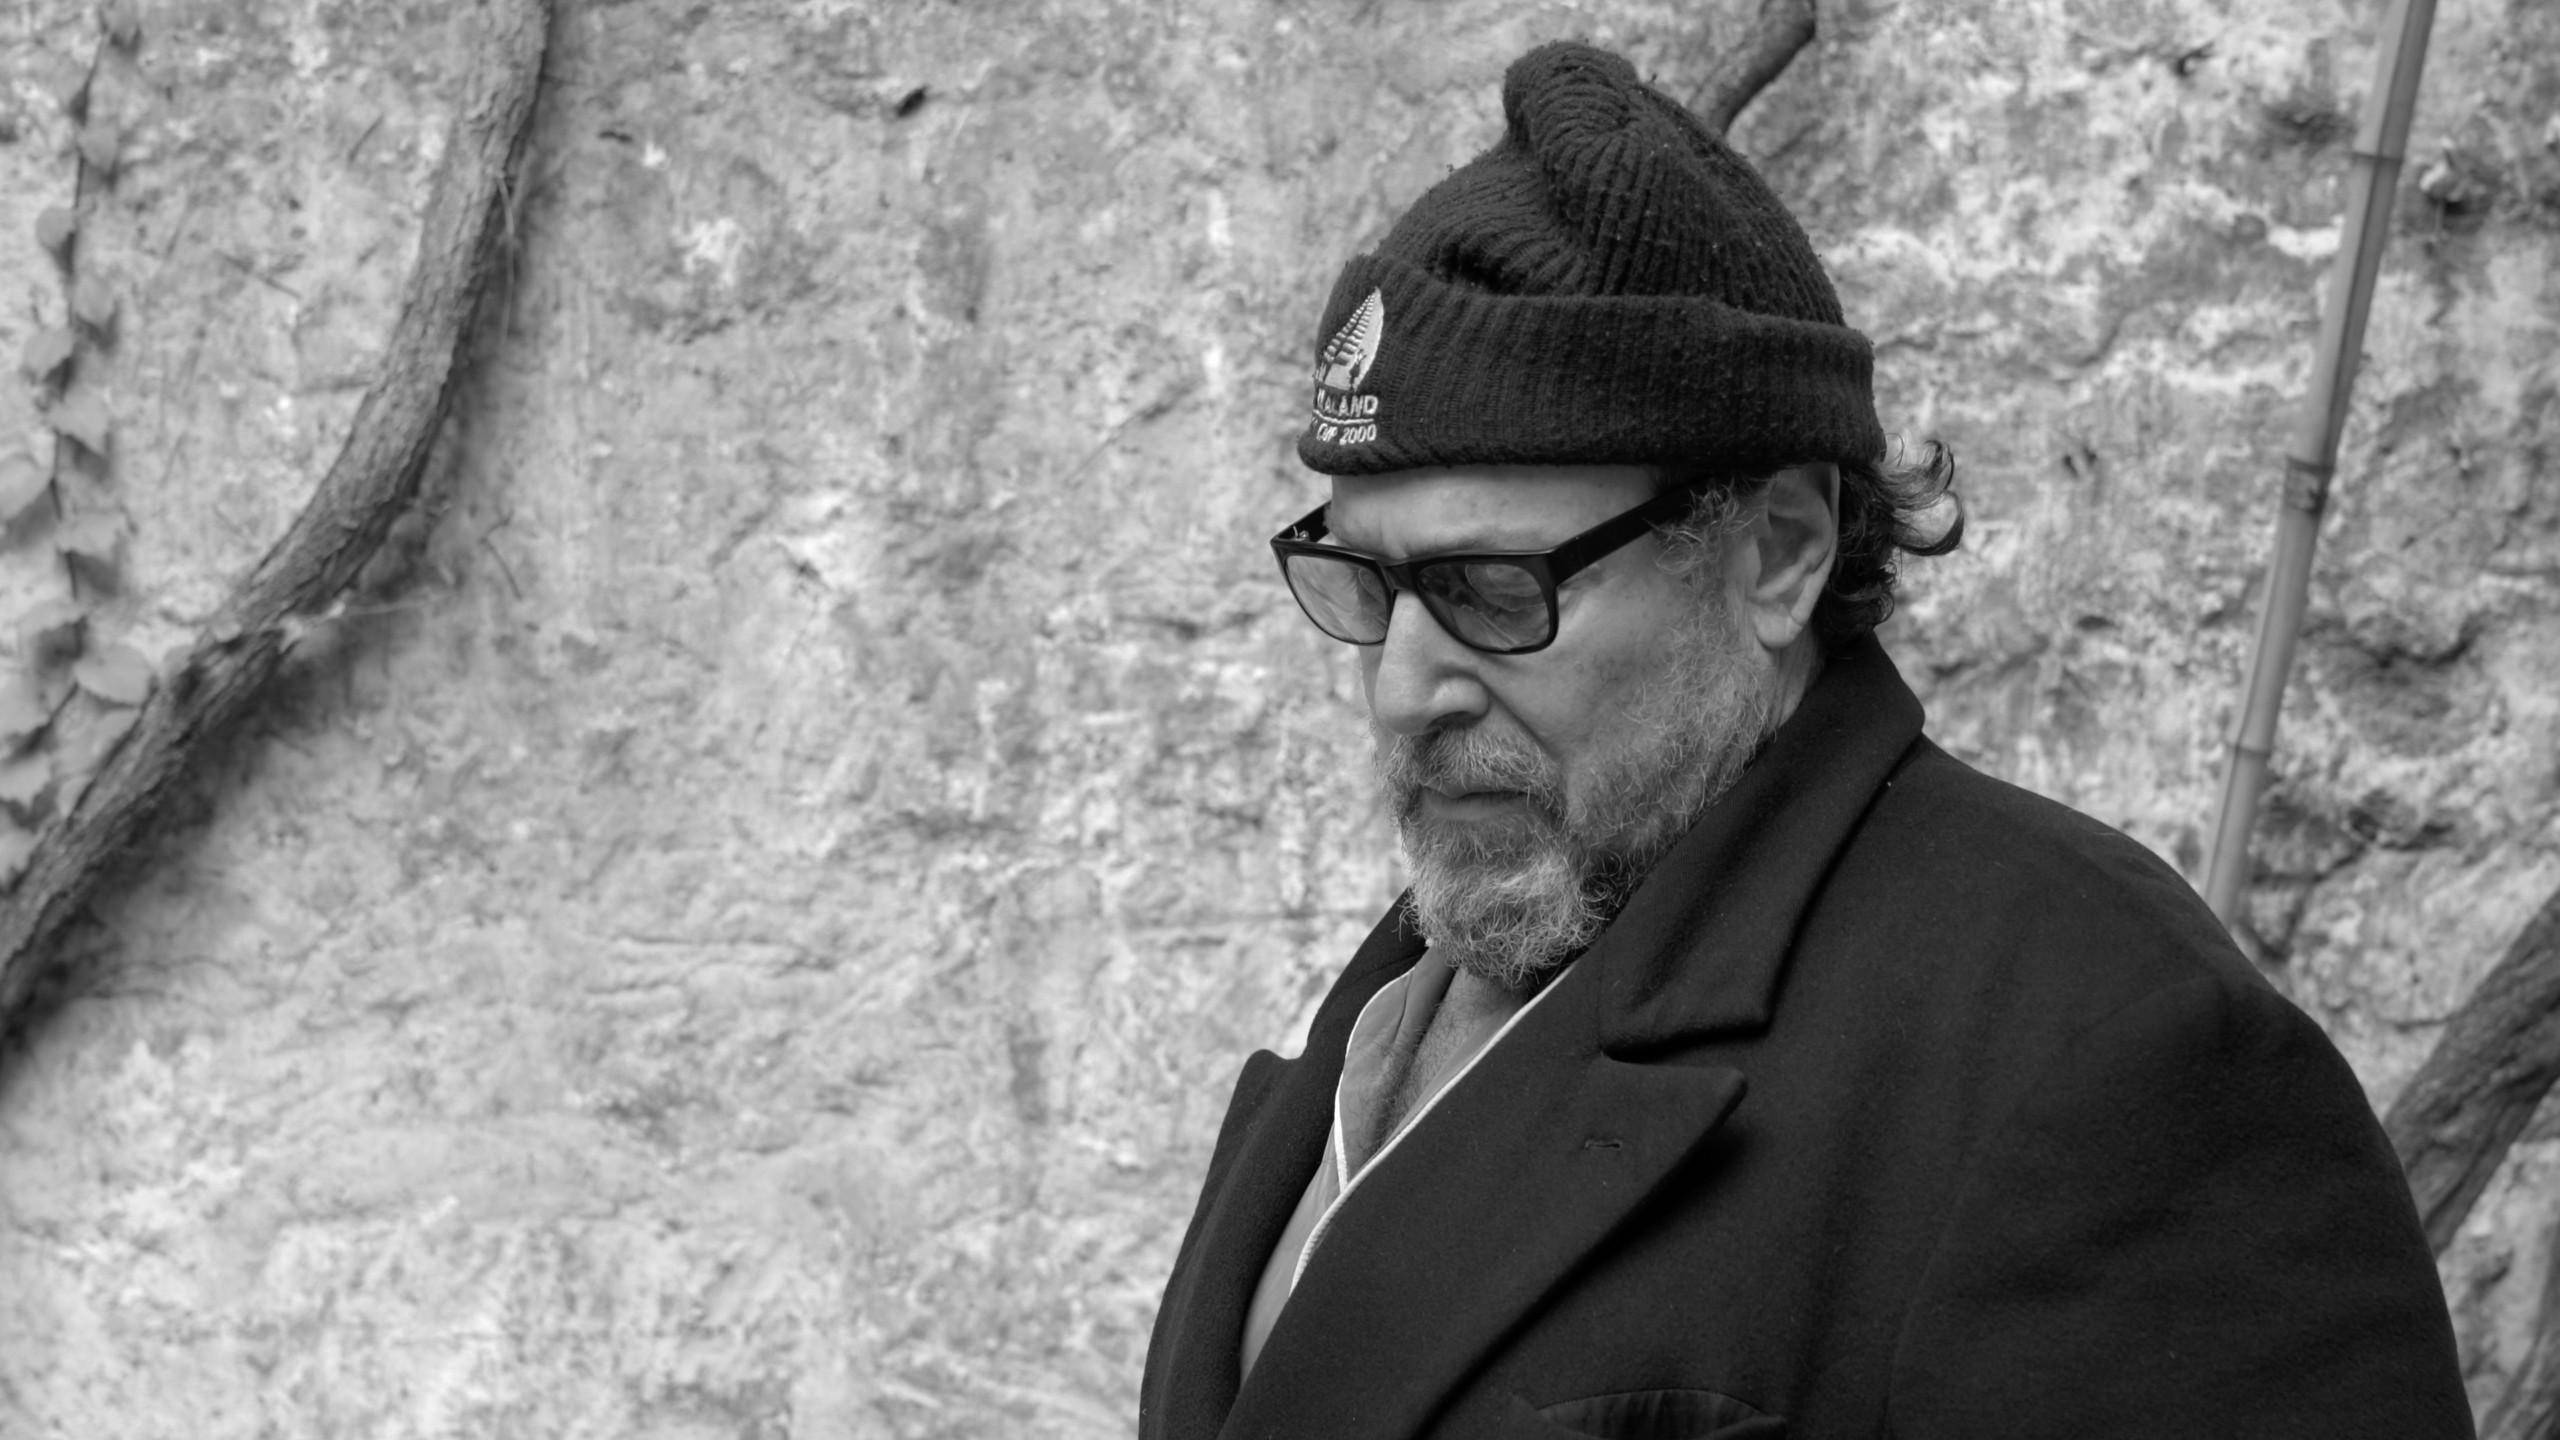 Black and white portrait of artist in beanie and glasses